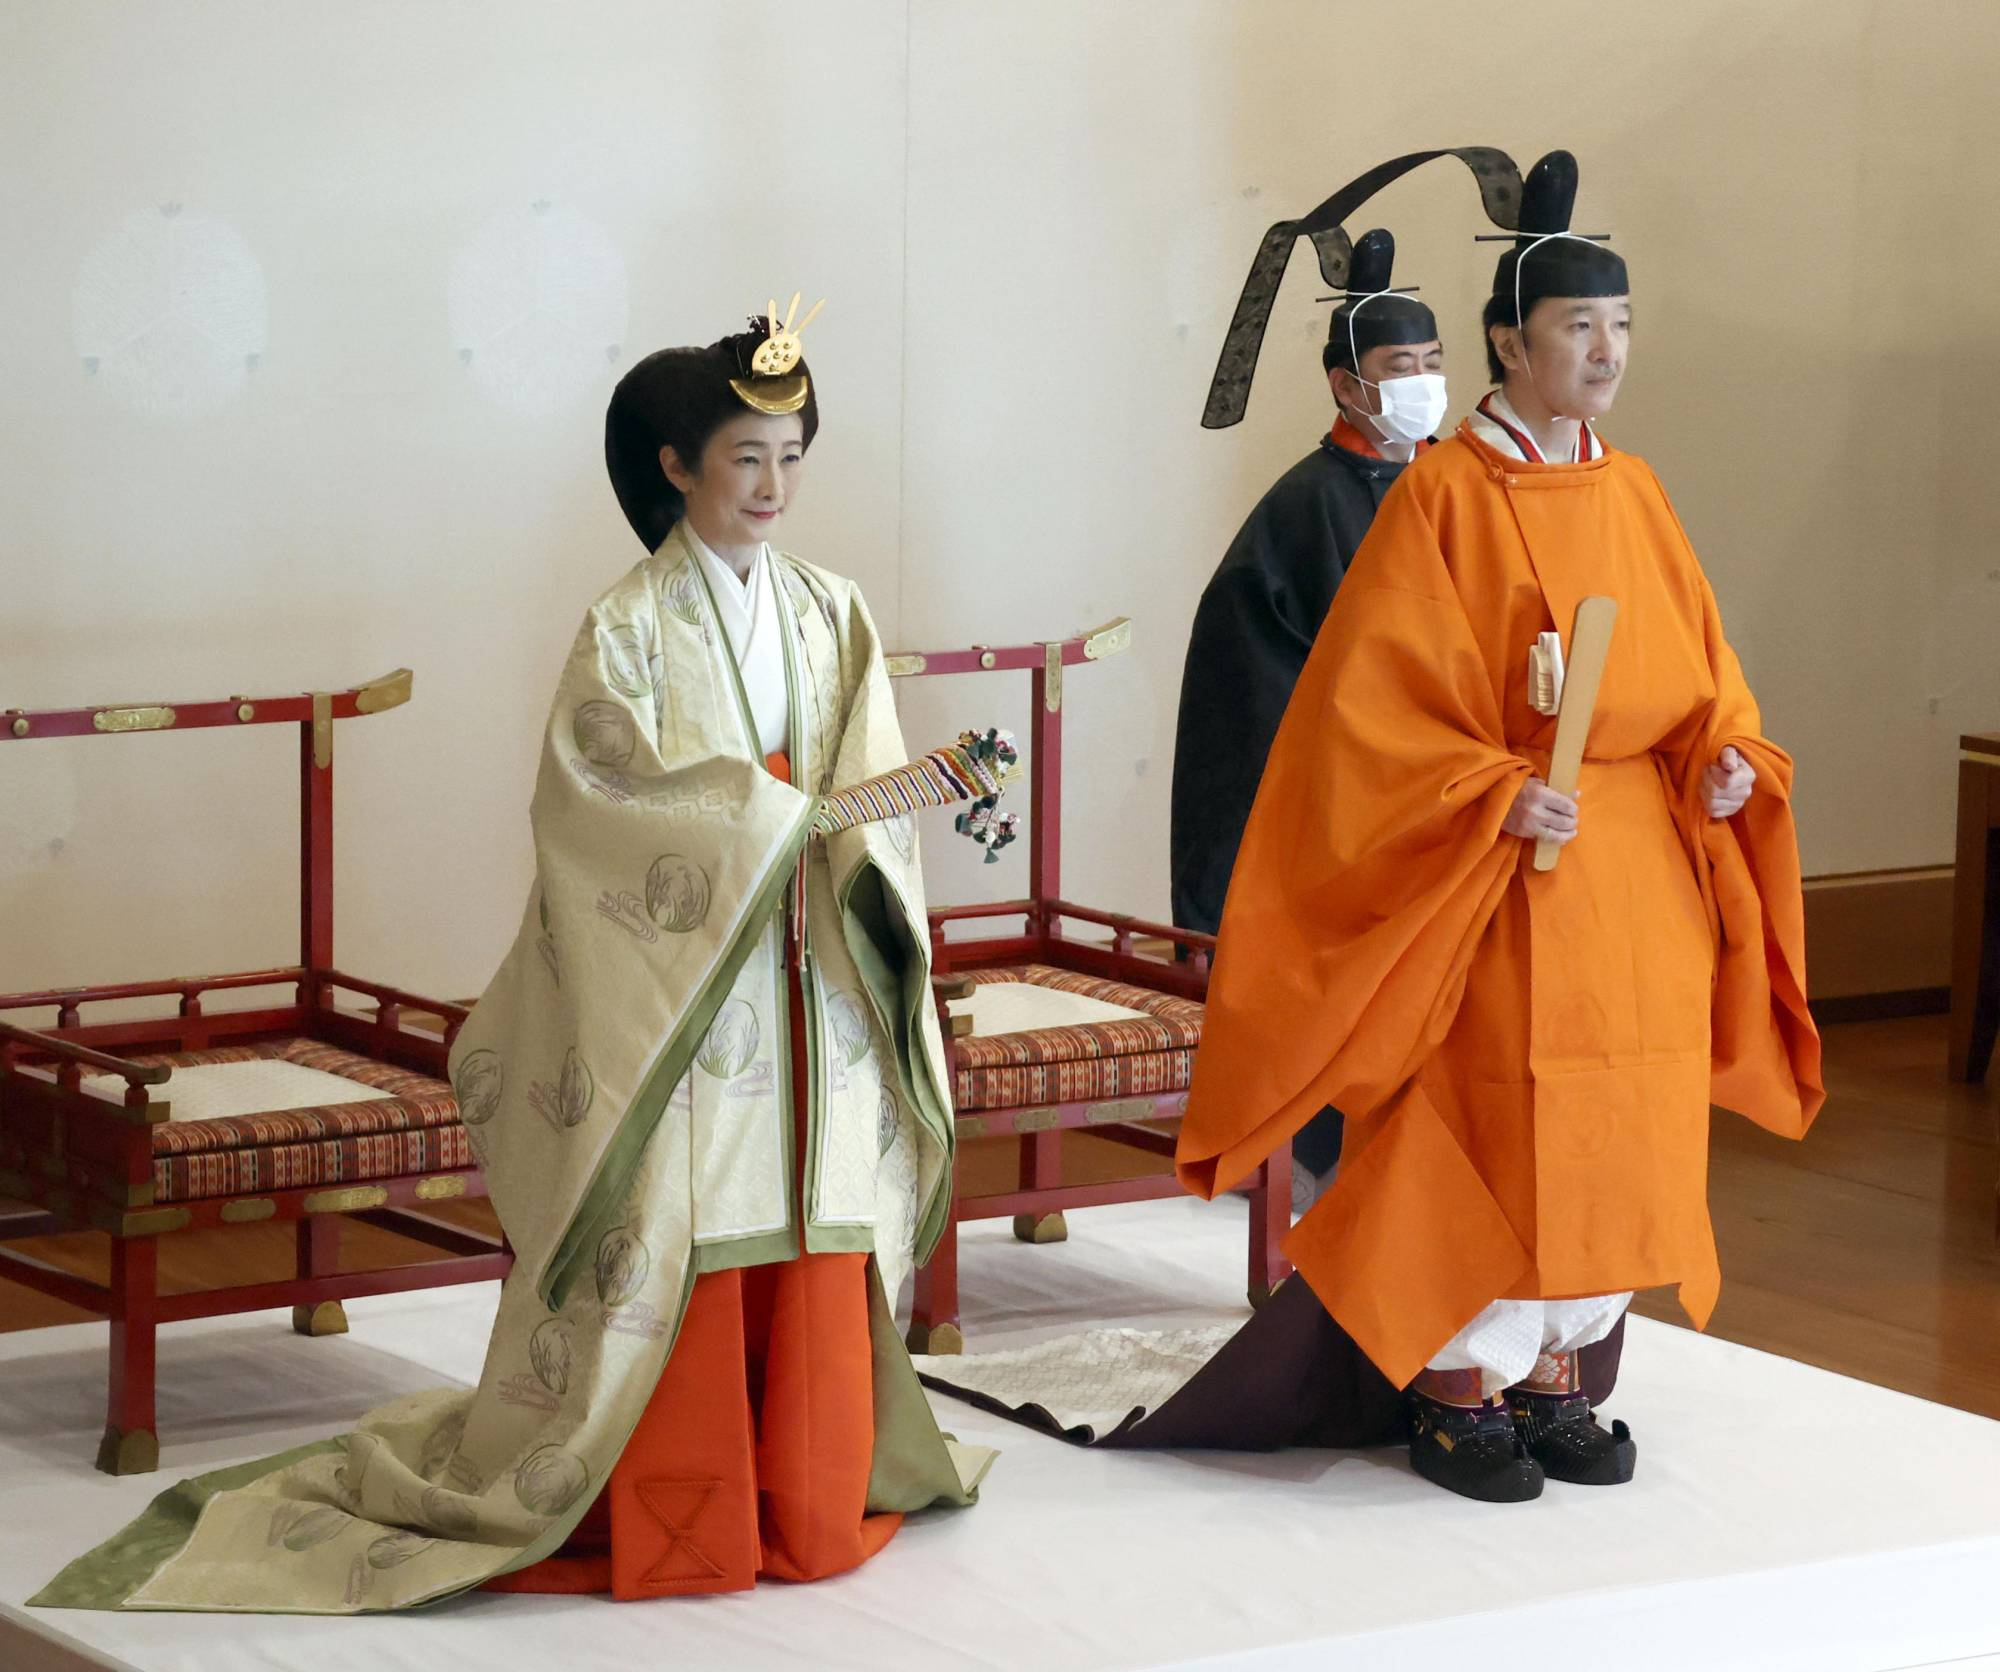 Crown Prince Akishino and Crown Princess Kiko attend the Rikkoshi Senmei no Gi ceremony at the Imperial Palace on Sunday. | POOL / VIA KYODO